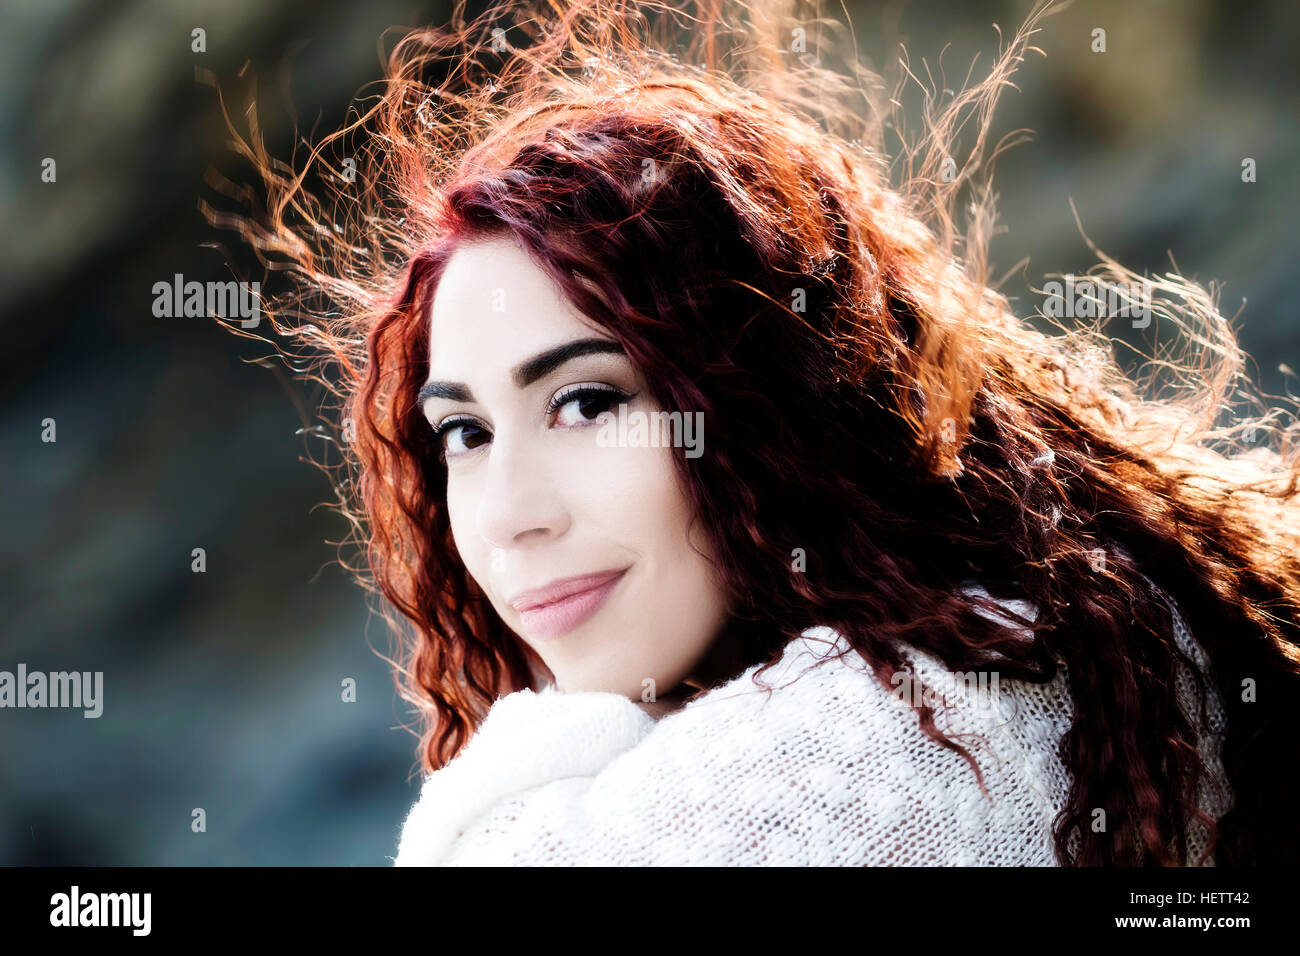 Hispanic Woman Outdoors Portrait White Knit Top And Hair Blowing In Wind Stock Photo